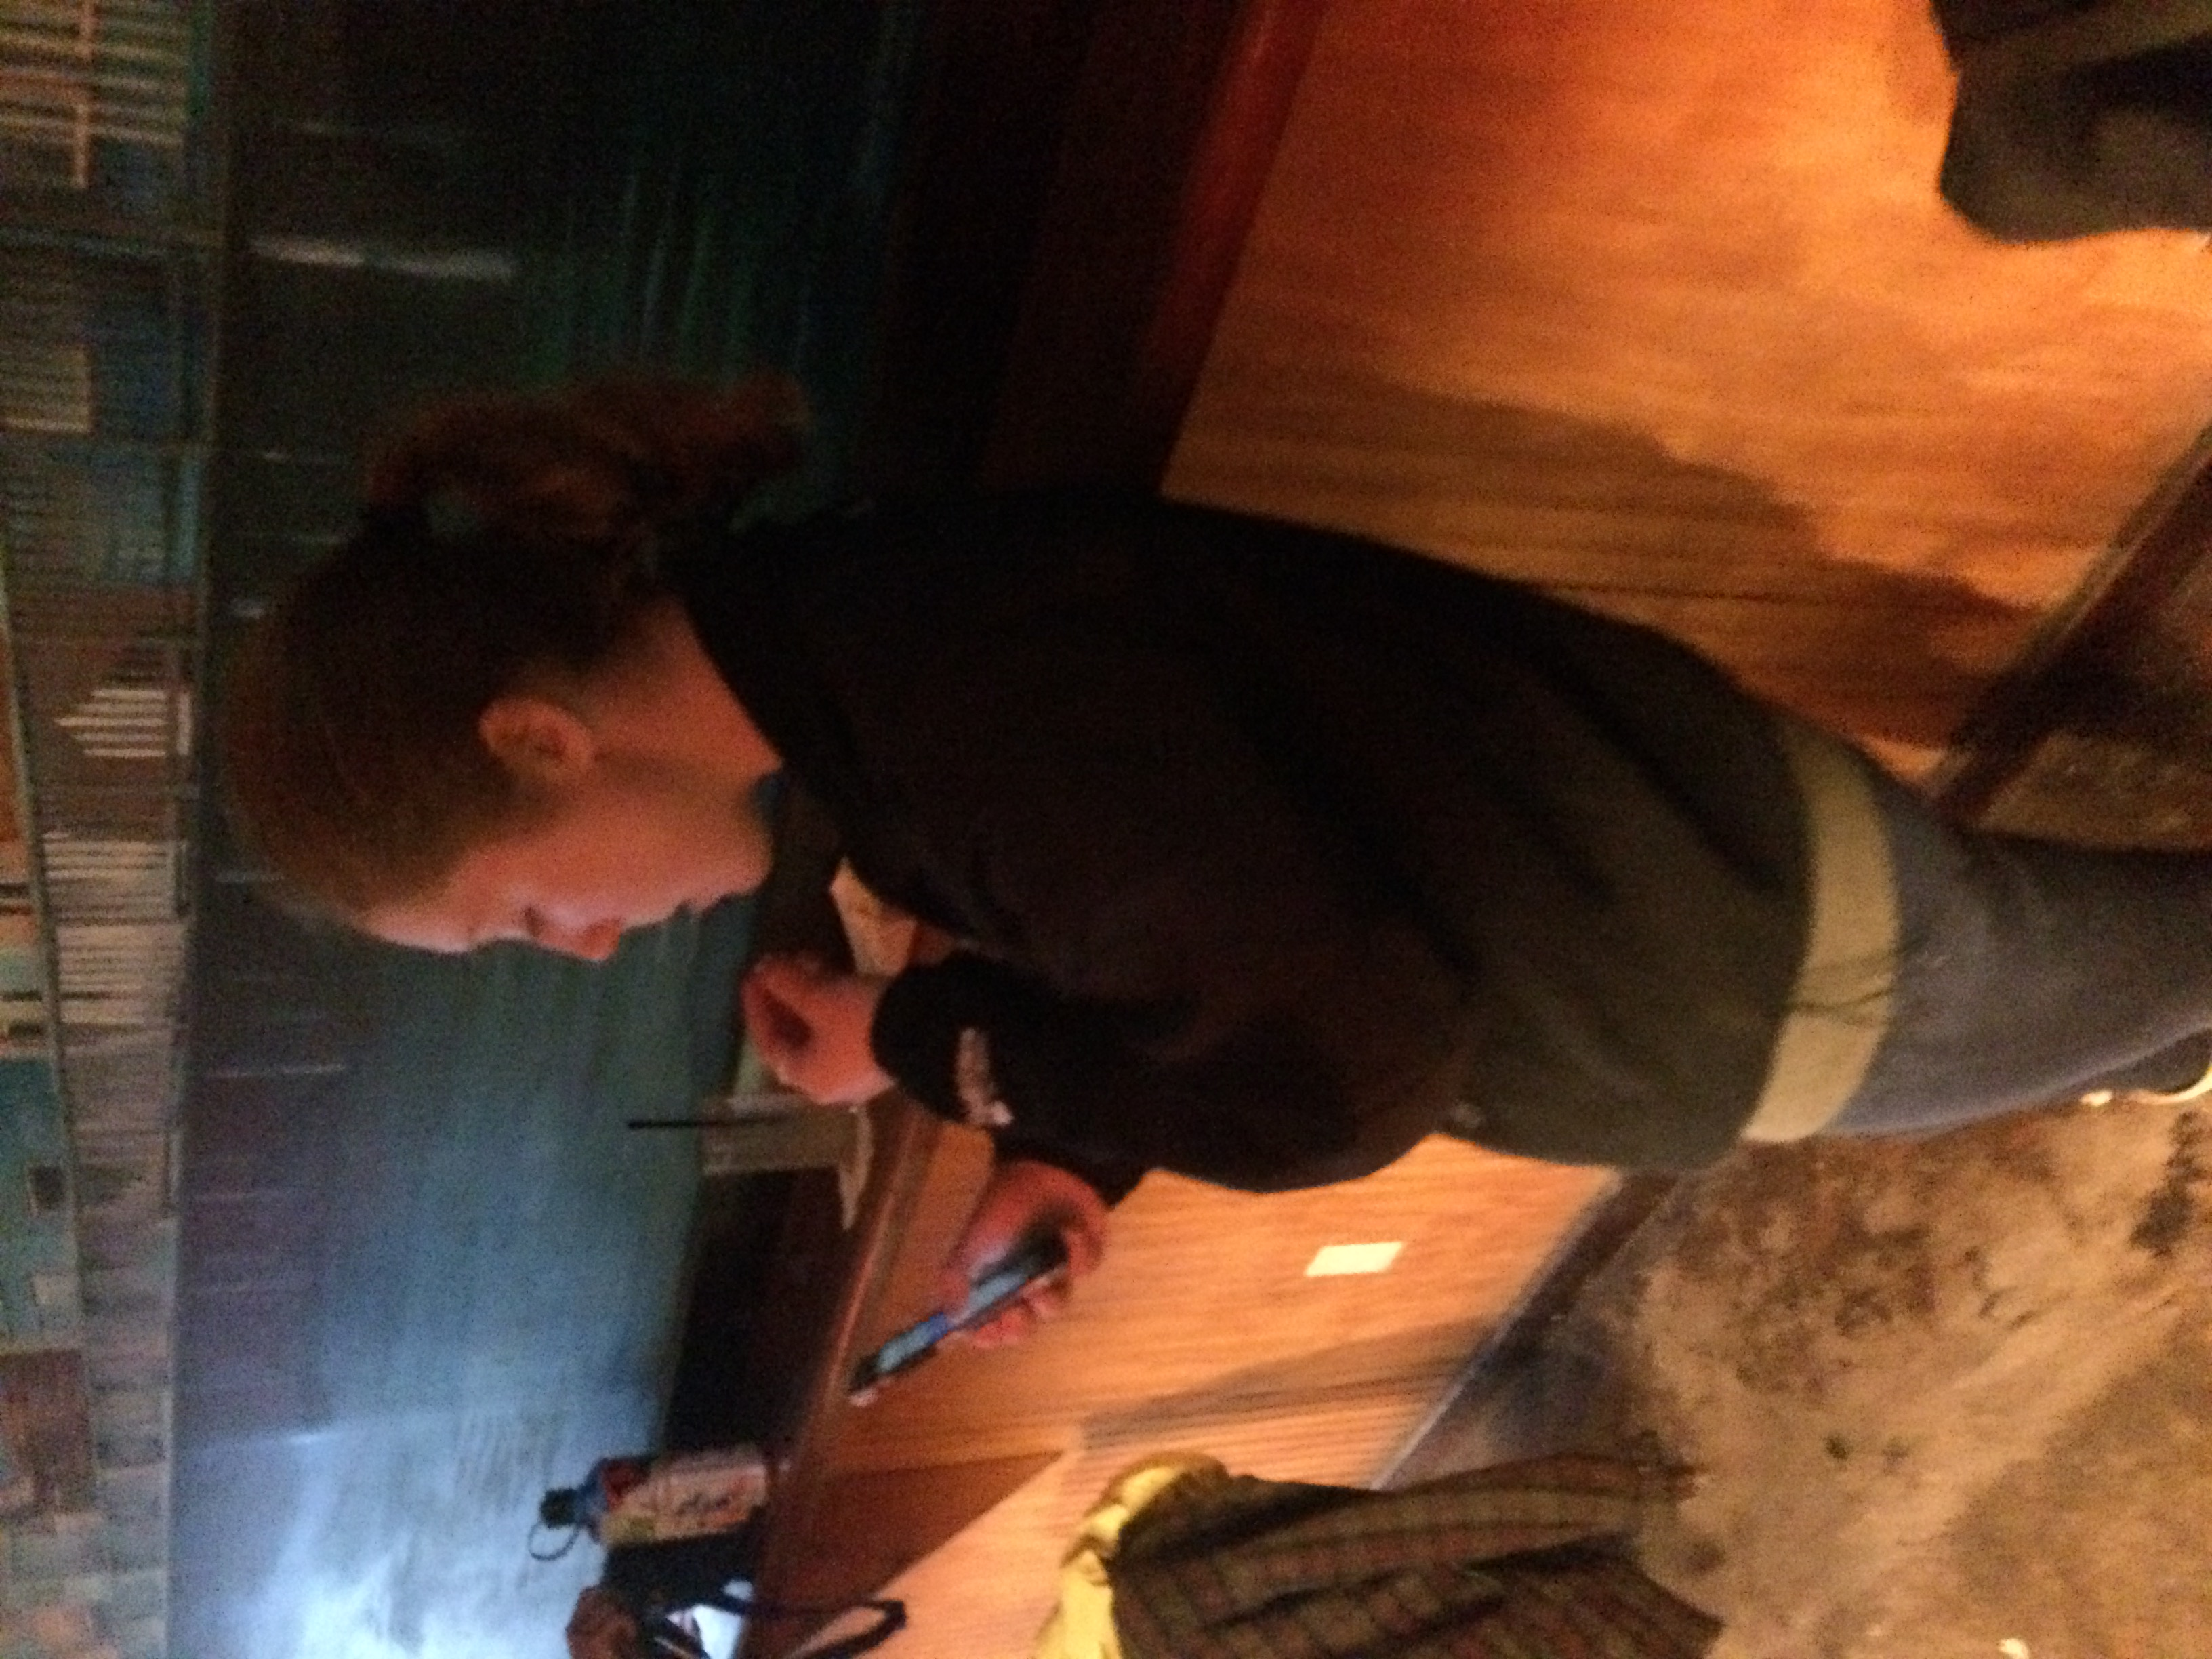 This is Tara on her phone. We tried getting a picture of her not on her phone, but we are pretty sure one does notexist.